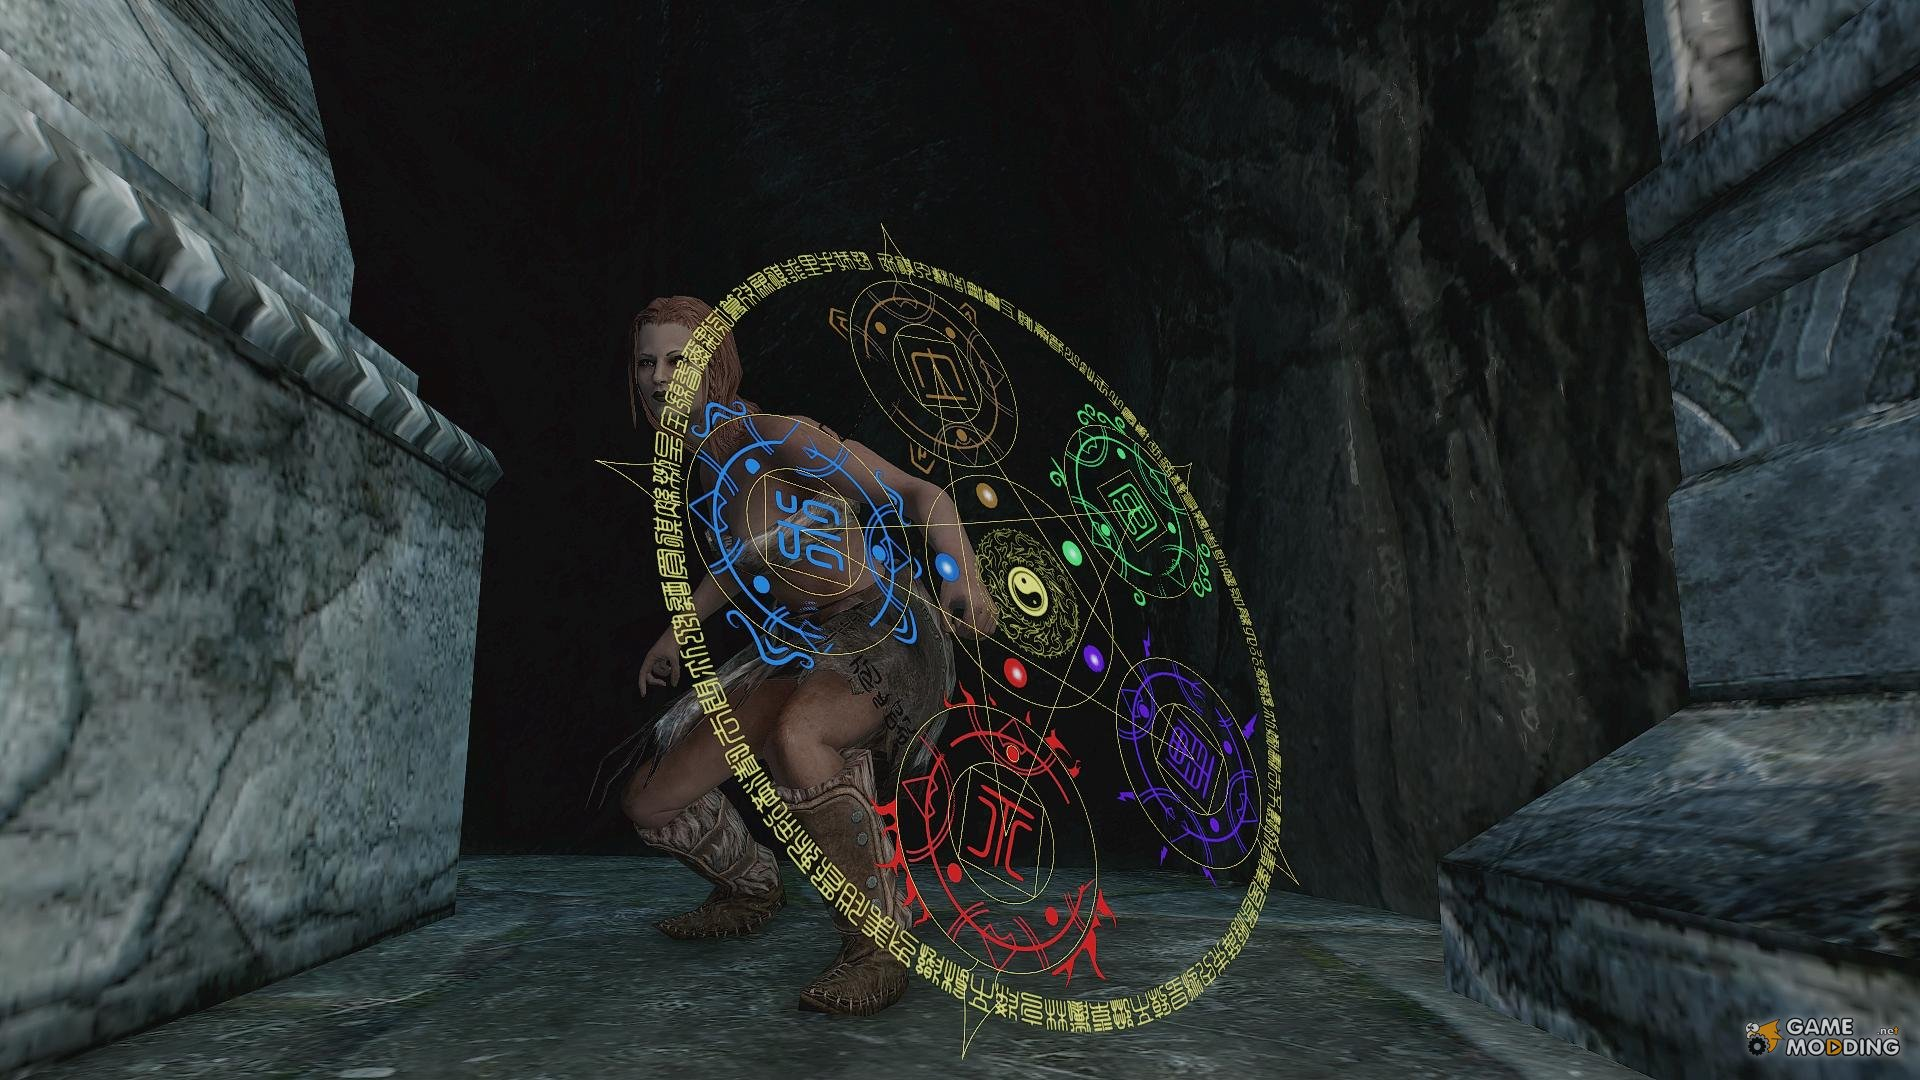 Nude mod runes of magic exploited images